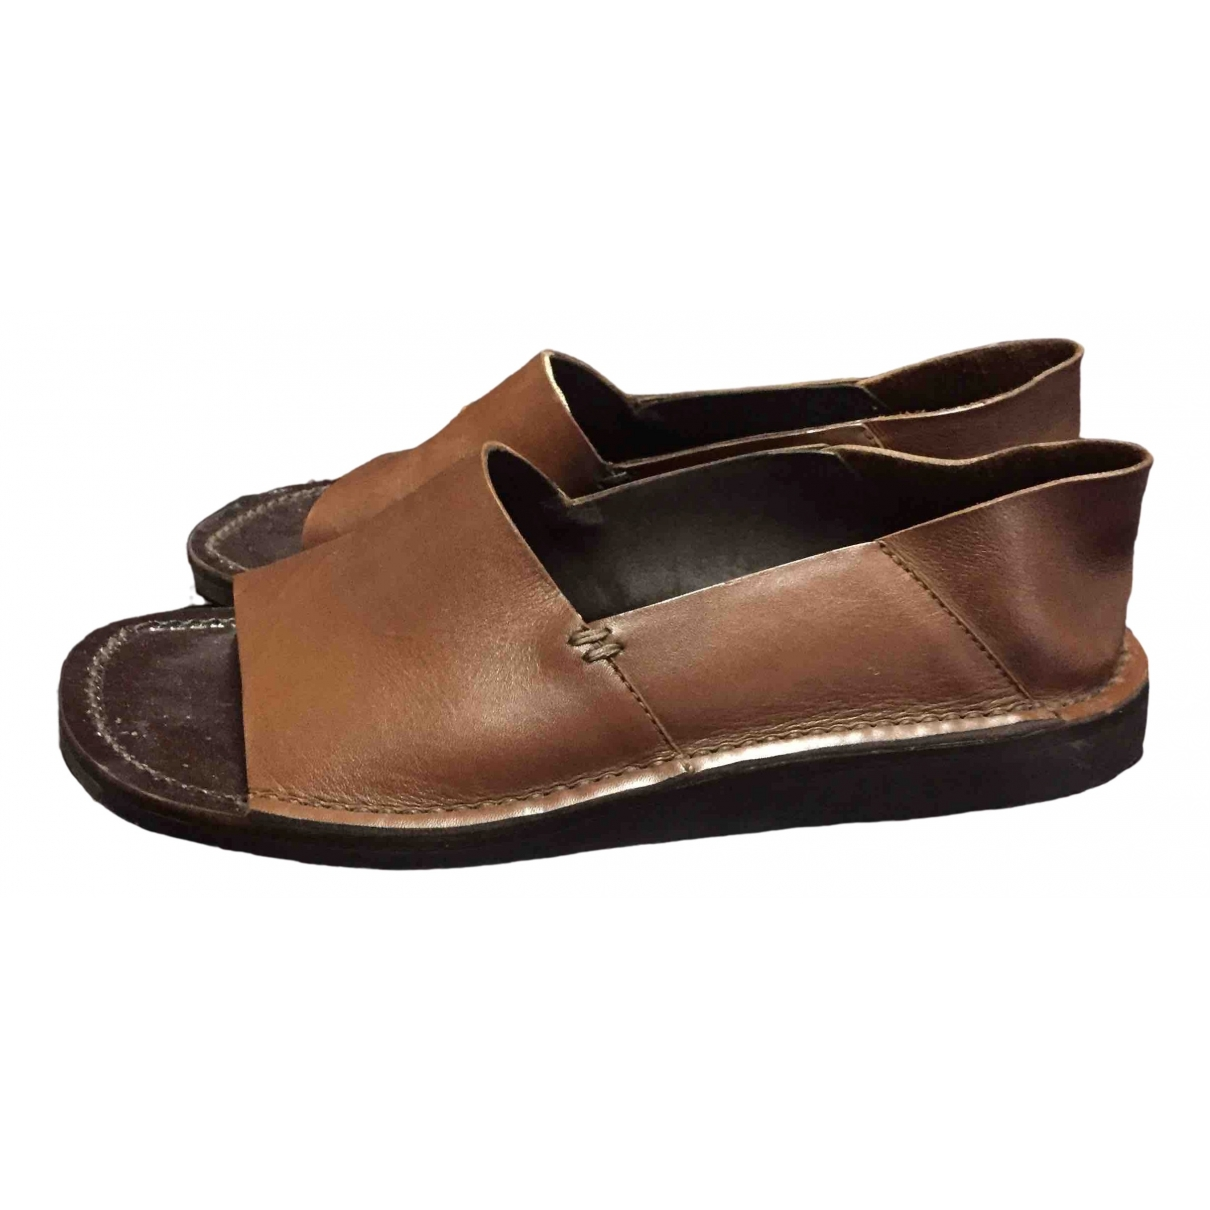 Prada \N Brown Leather Espadrilles for Women 37 EU